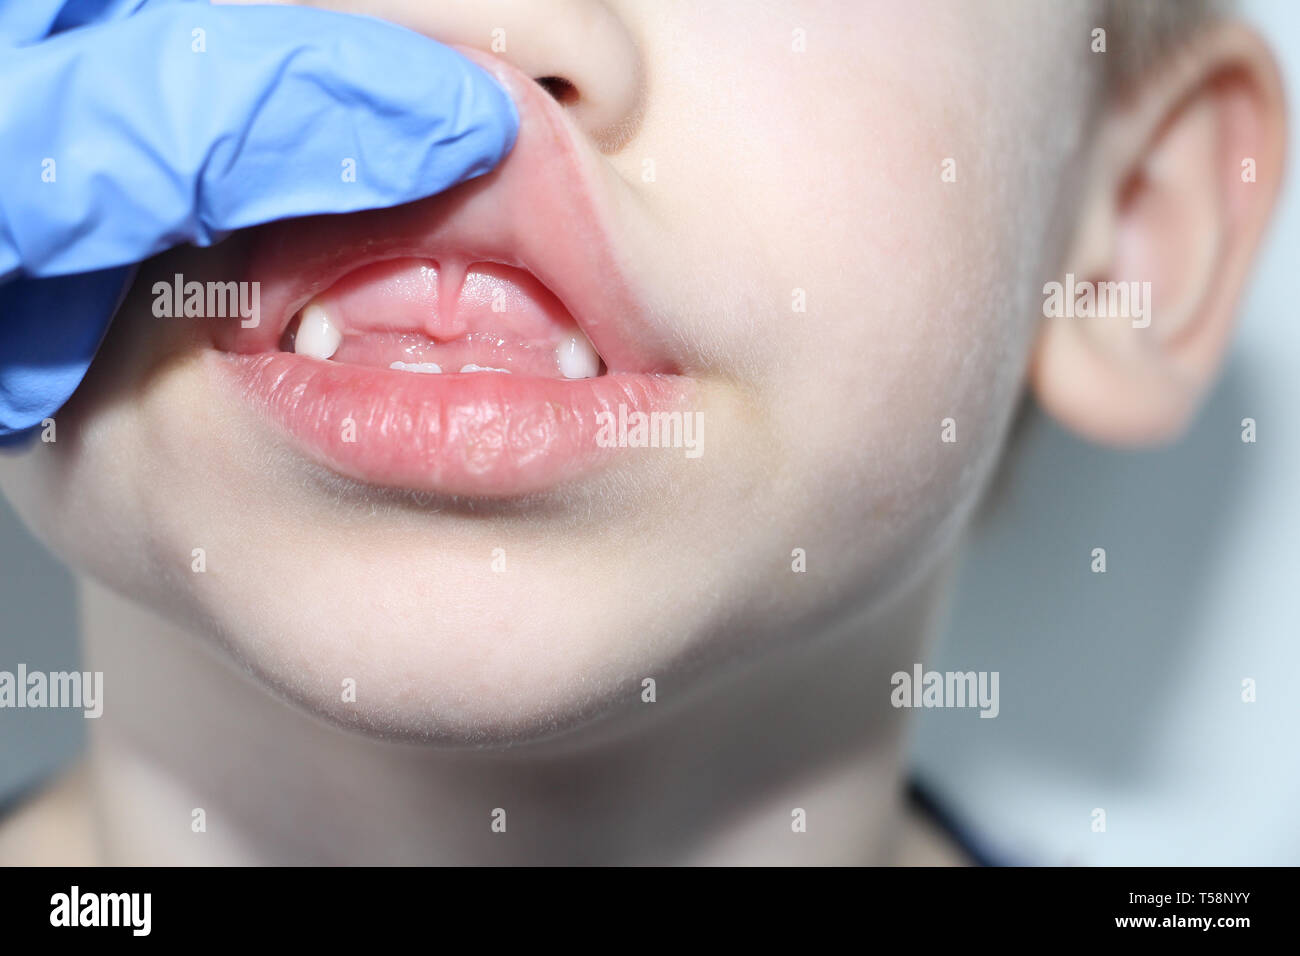 A dentist examines the baby teeth in the boy. The loss of milk teeth. The boy has no upper central teeth. The loss of milk teeth in children. Stock Photo